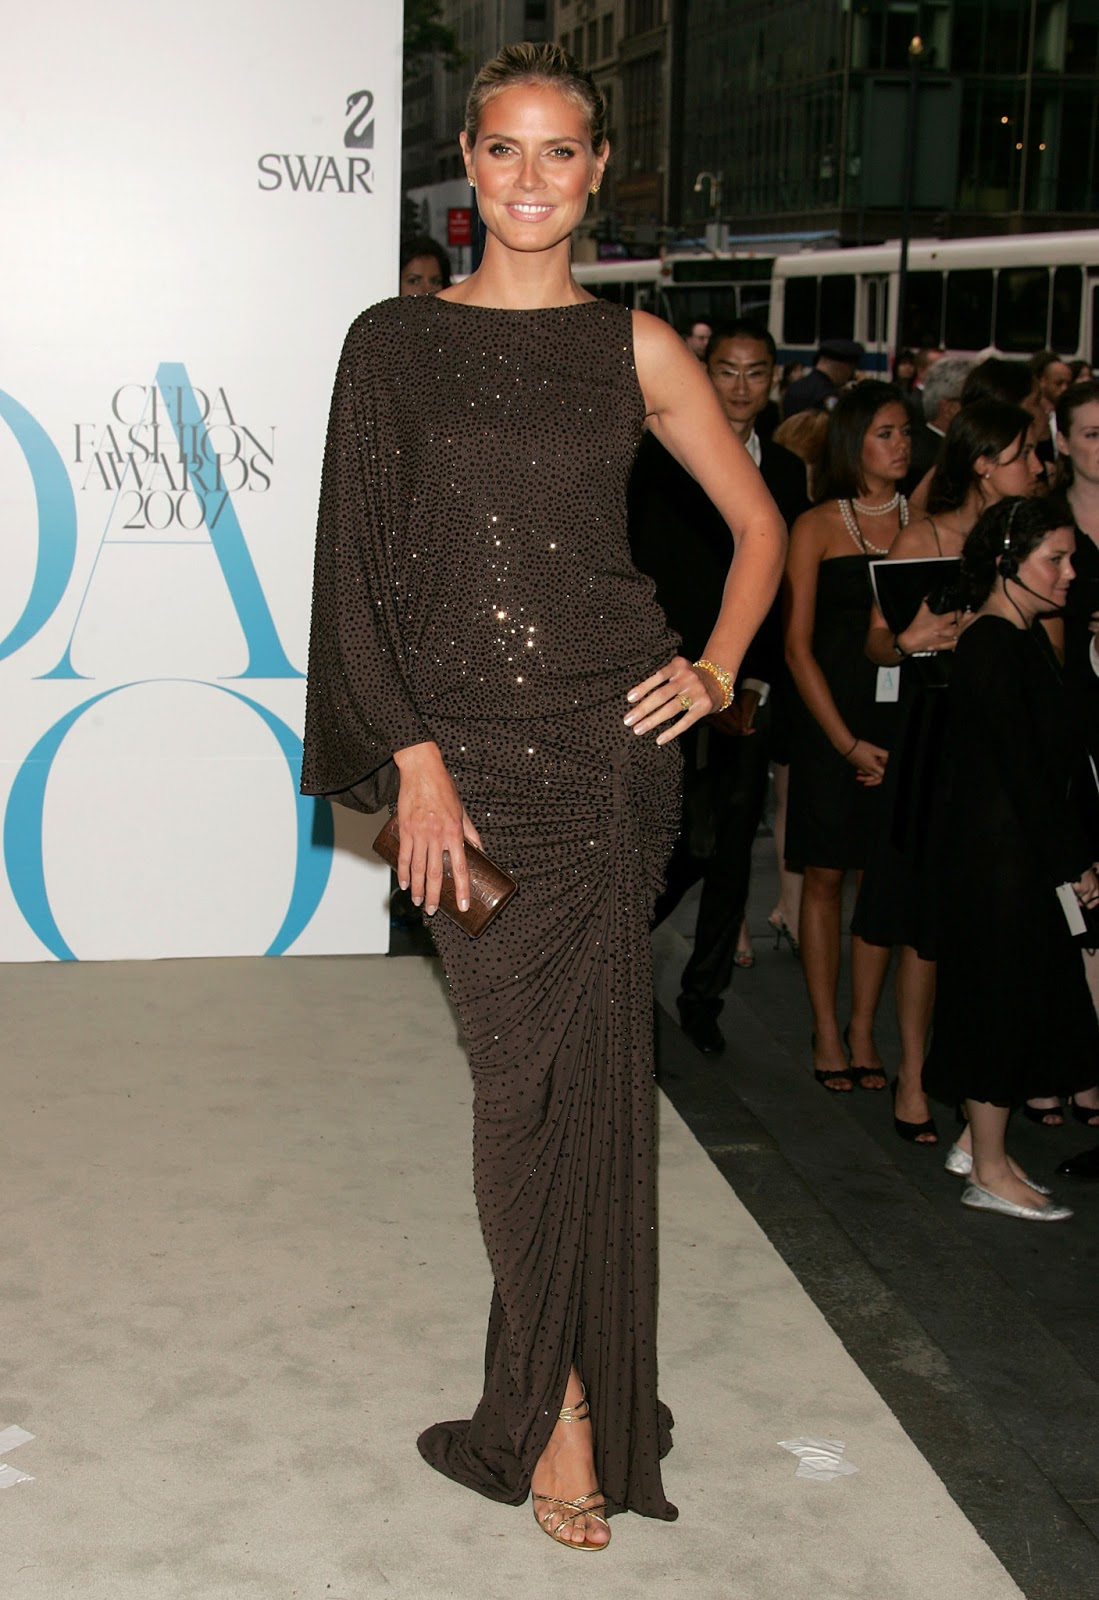 Heidi Klum At Cfda Fashion Awards In New York City, 2007